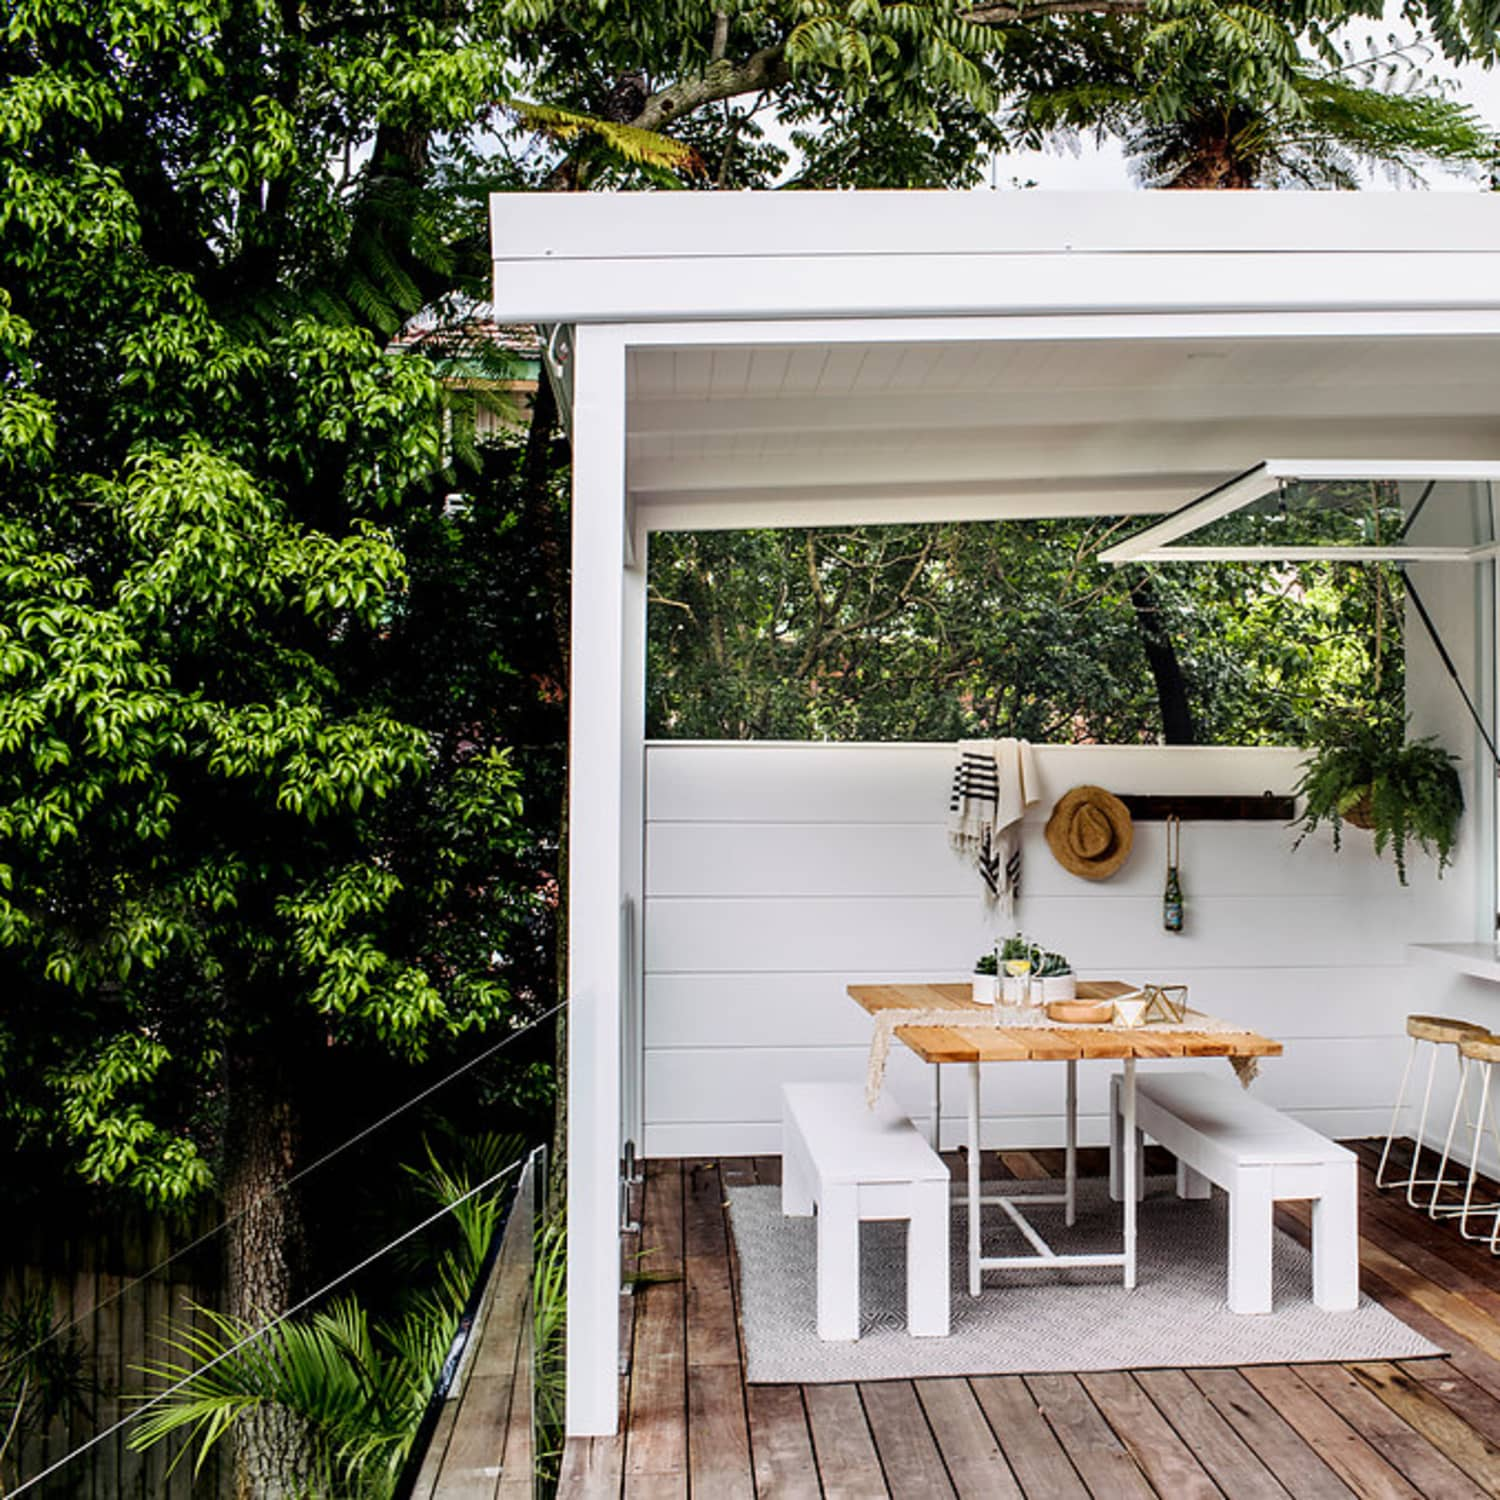 Outdoor Kitchen Ideas & Inspiration | Apartment Therapy